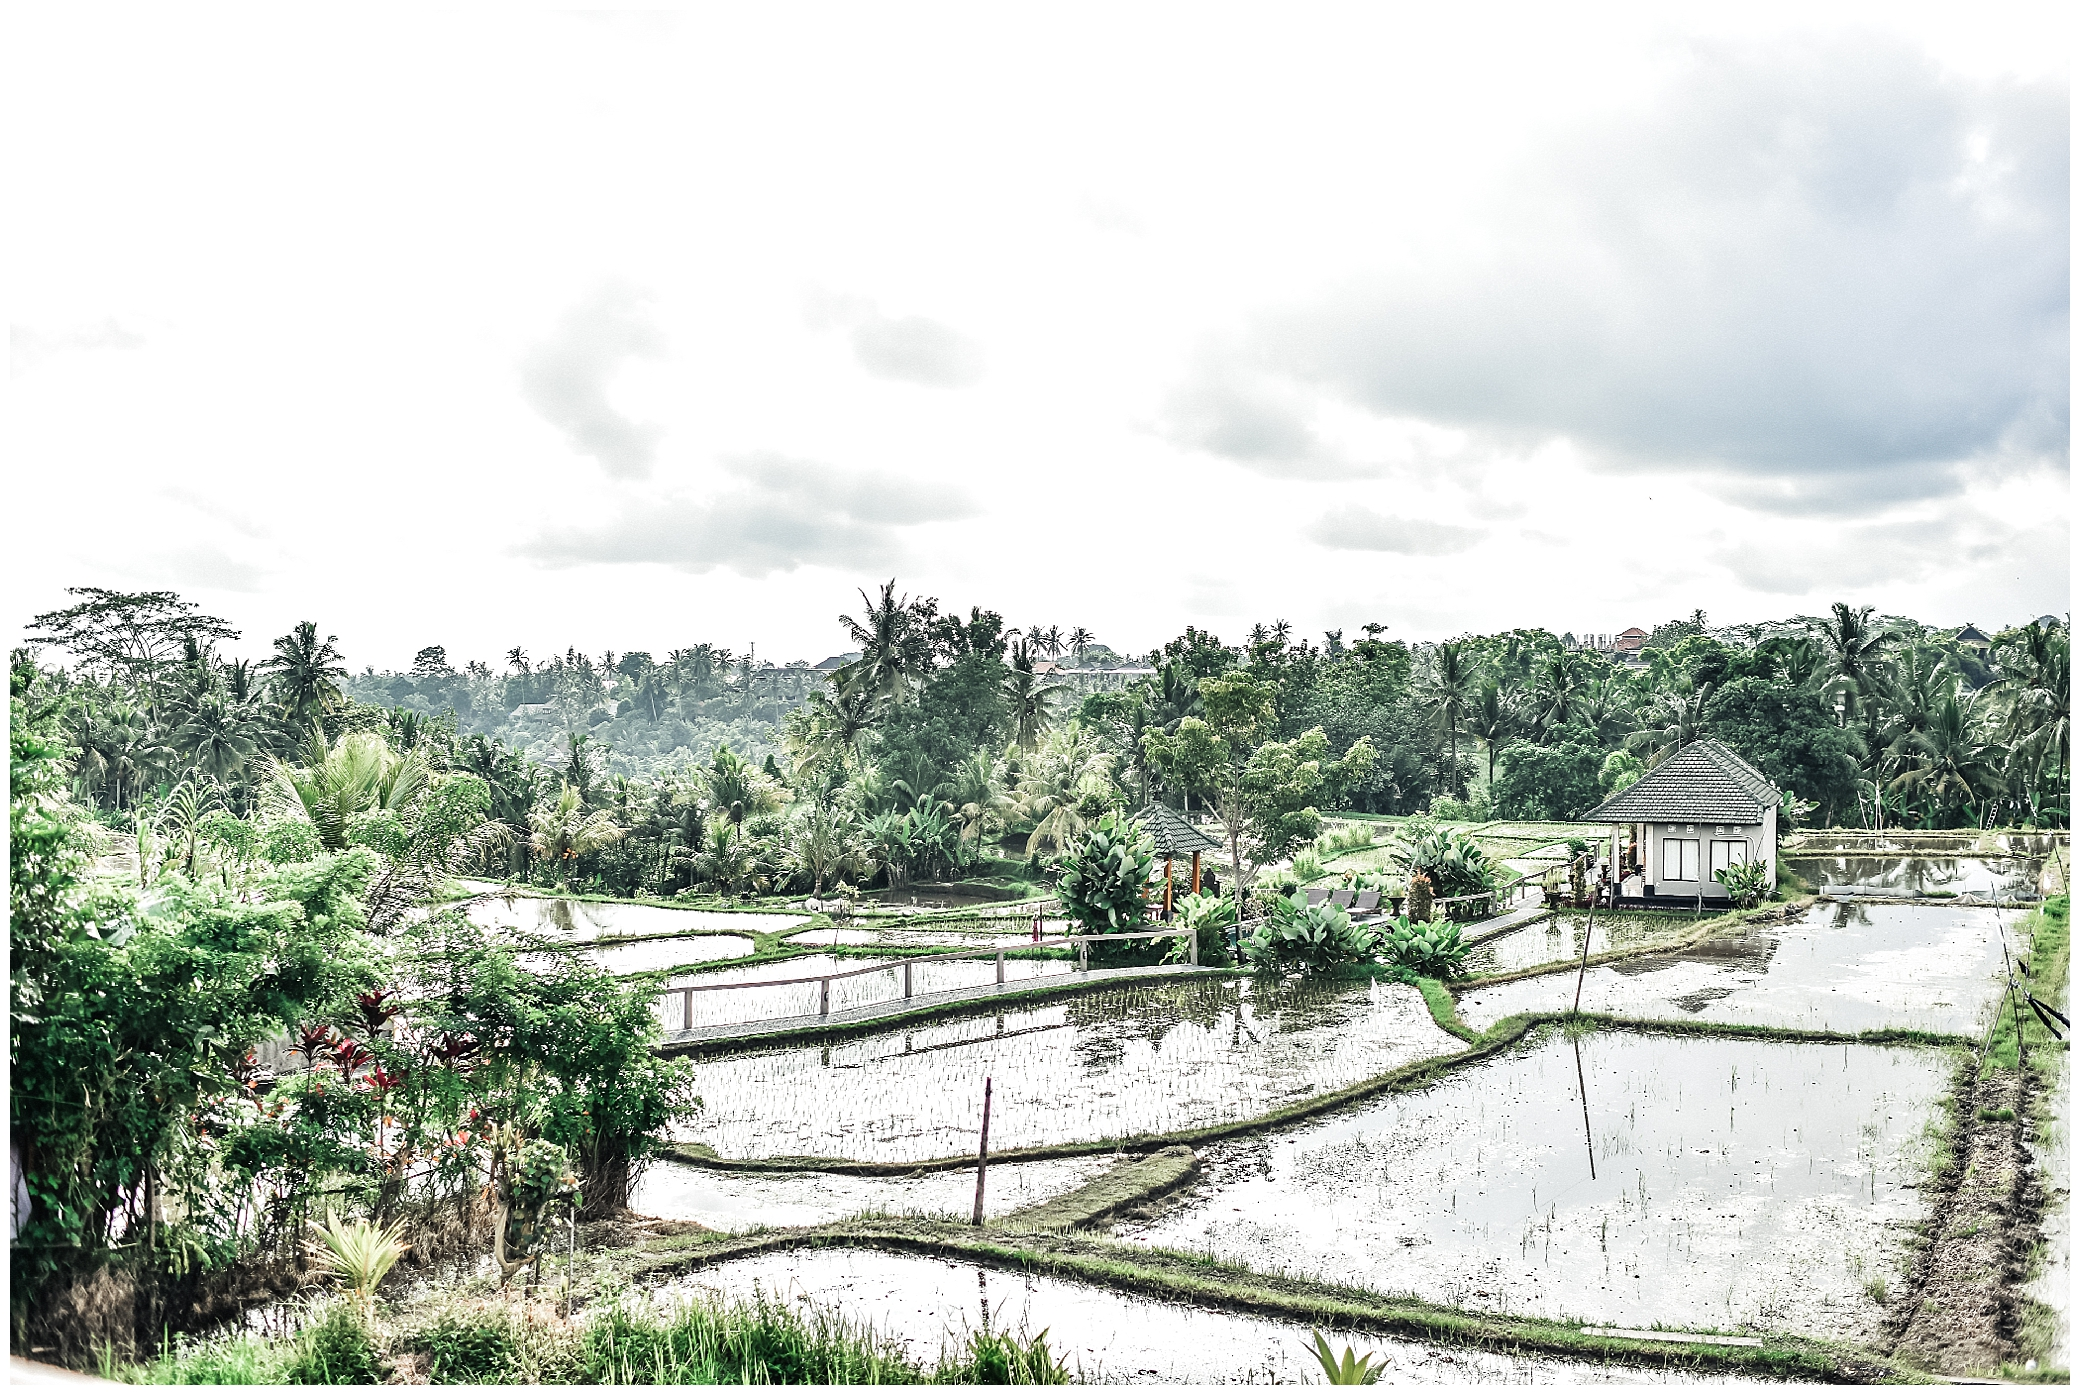 Top 10 Awesome Things To Do In Ubud_0026.jpg